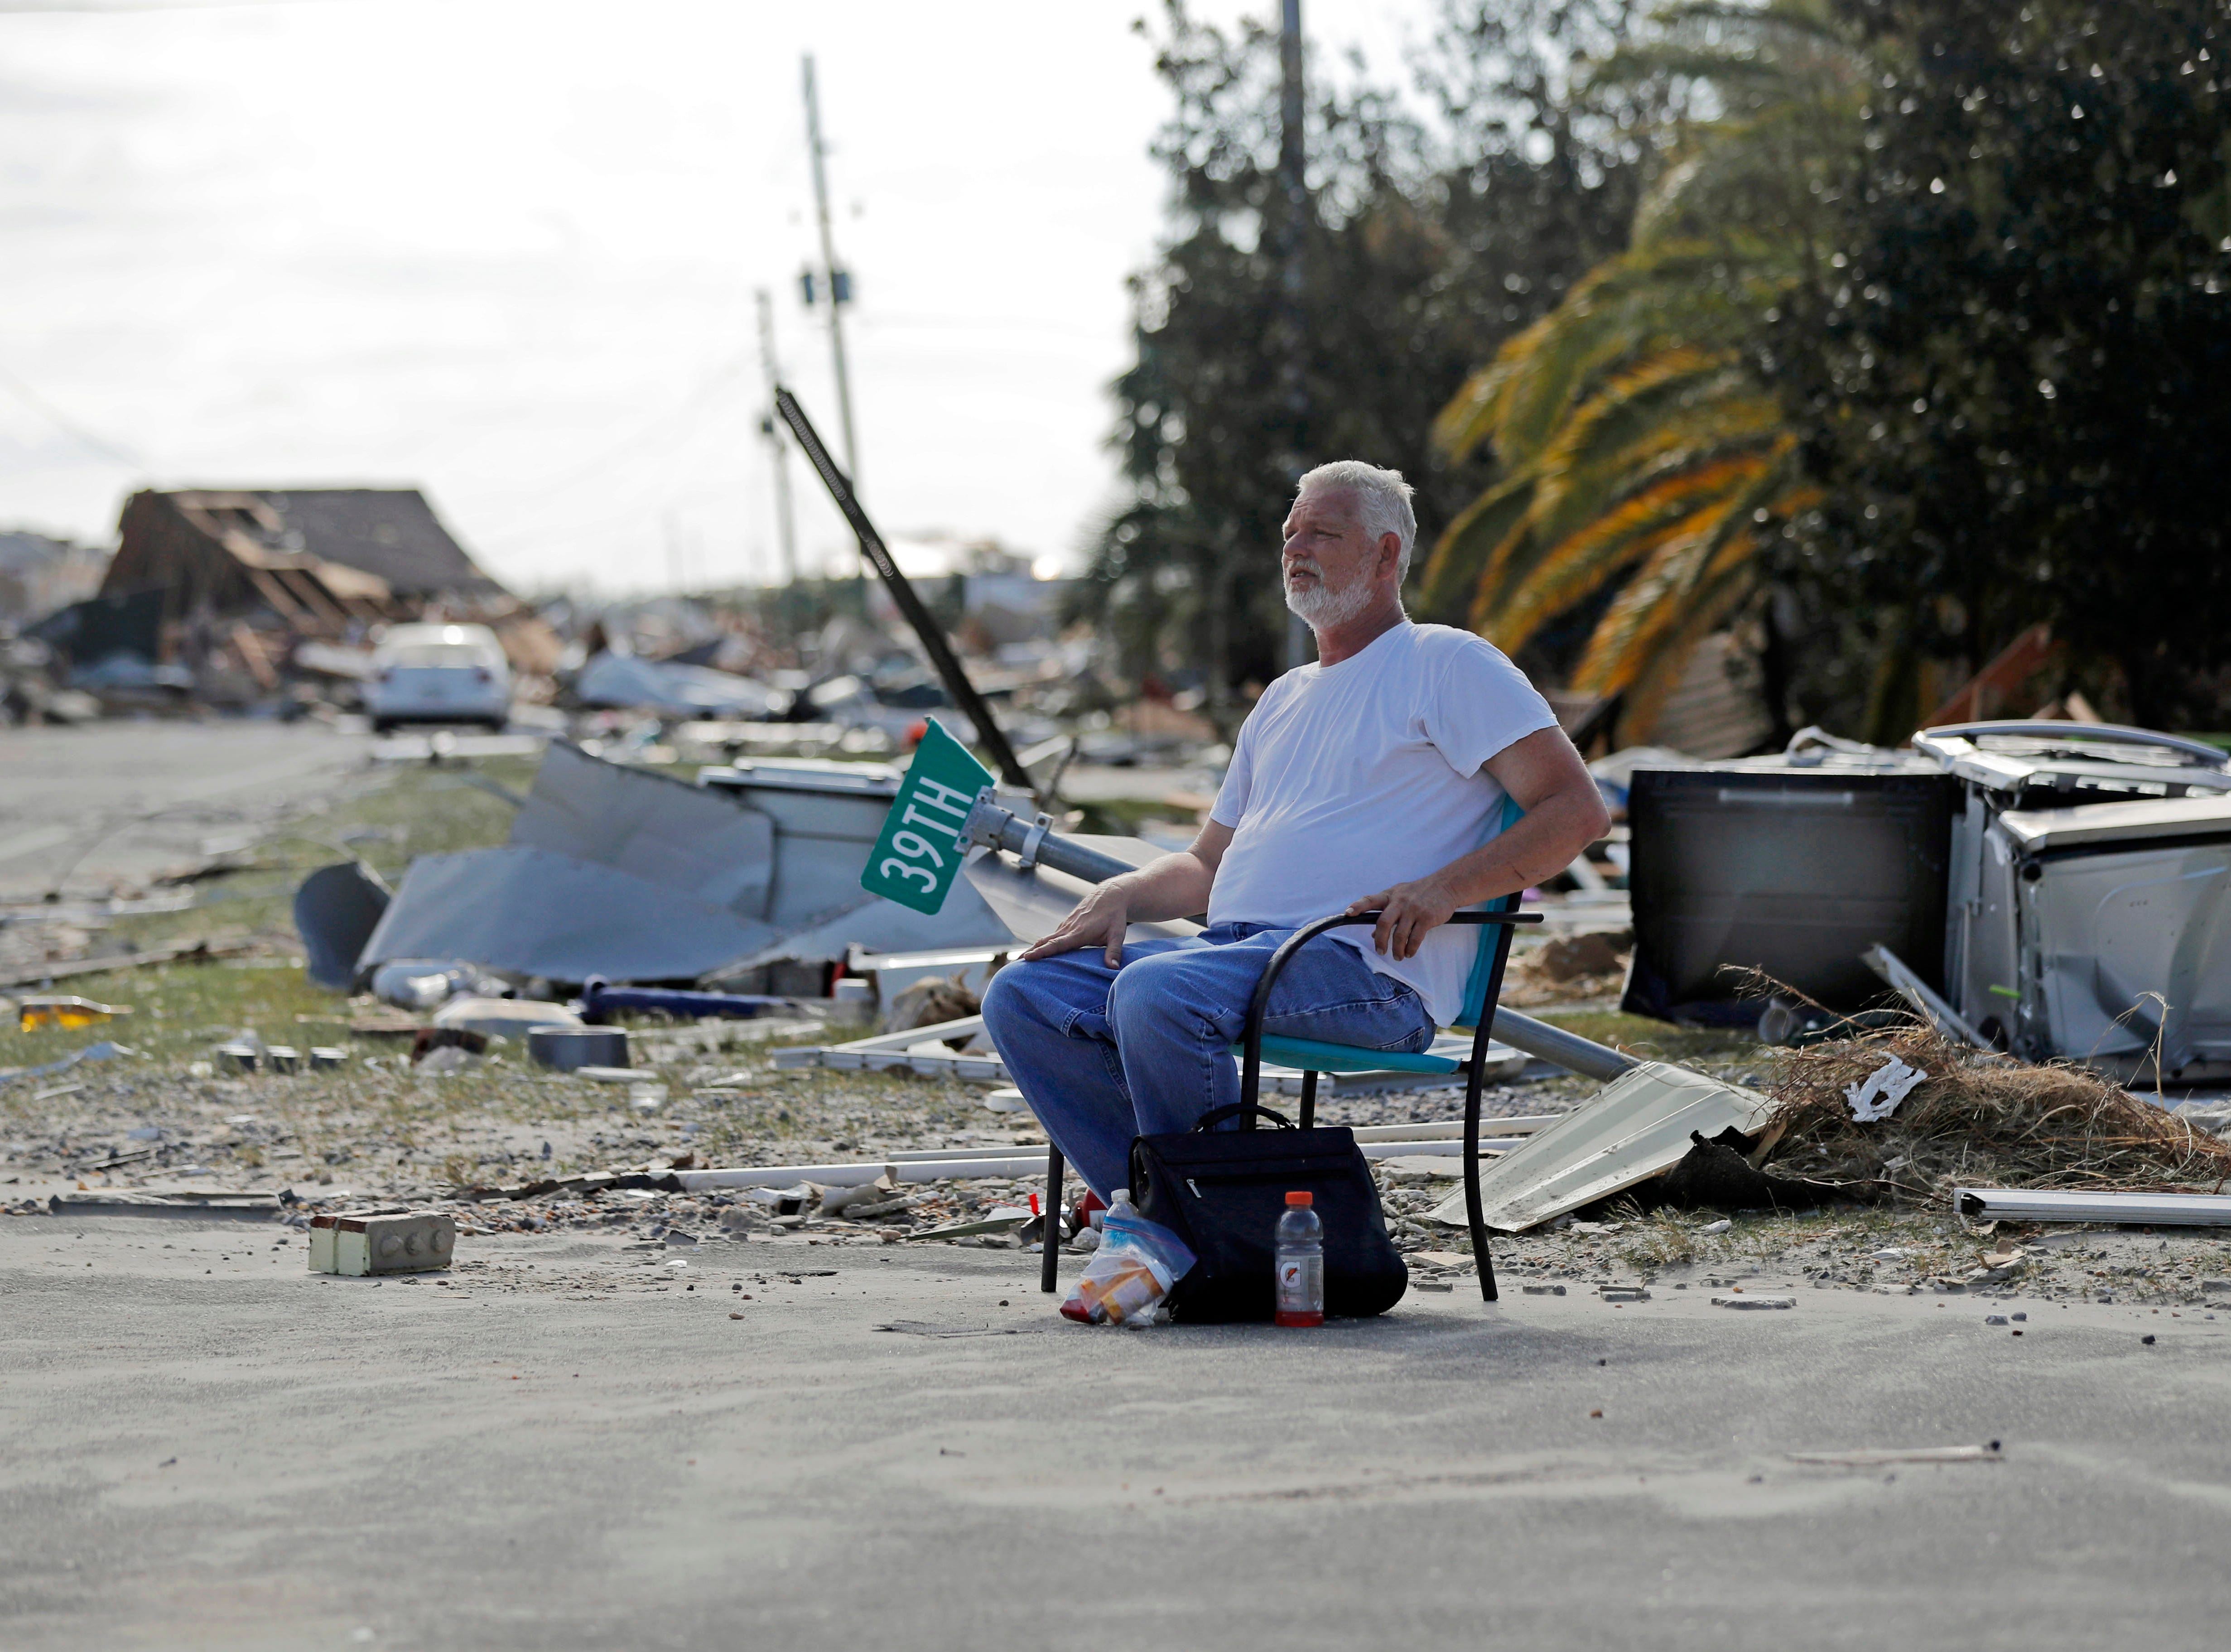 Resident Tony Feller, who stayed in Mexico Beach, Fla., during Hurricane Michael, sits in a chair amidst the destruction, Thursday, Oct. 11, 2018. (AP Photo/Gerald Herbert)